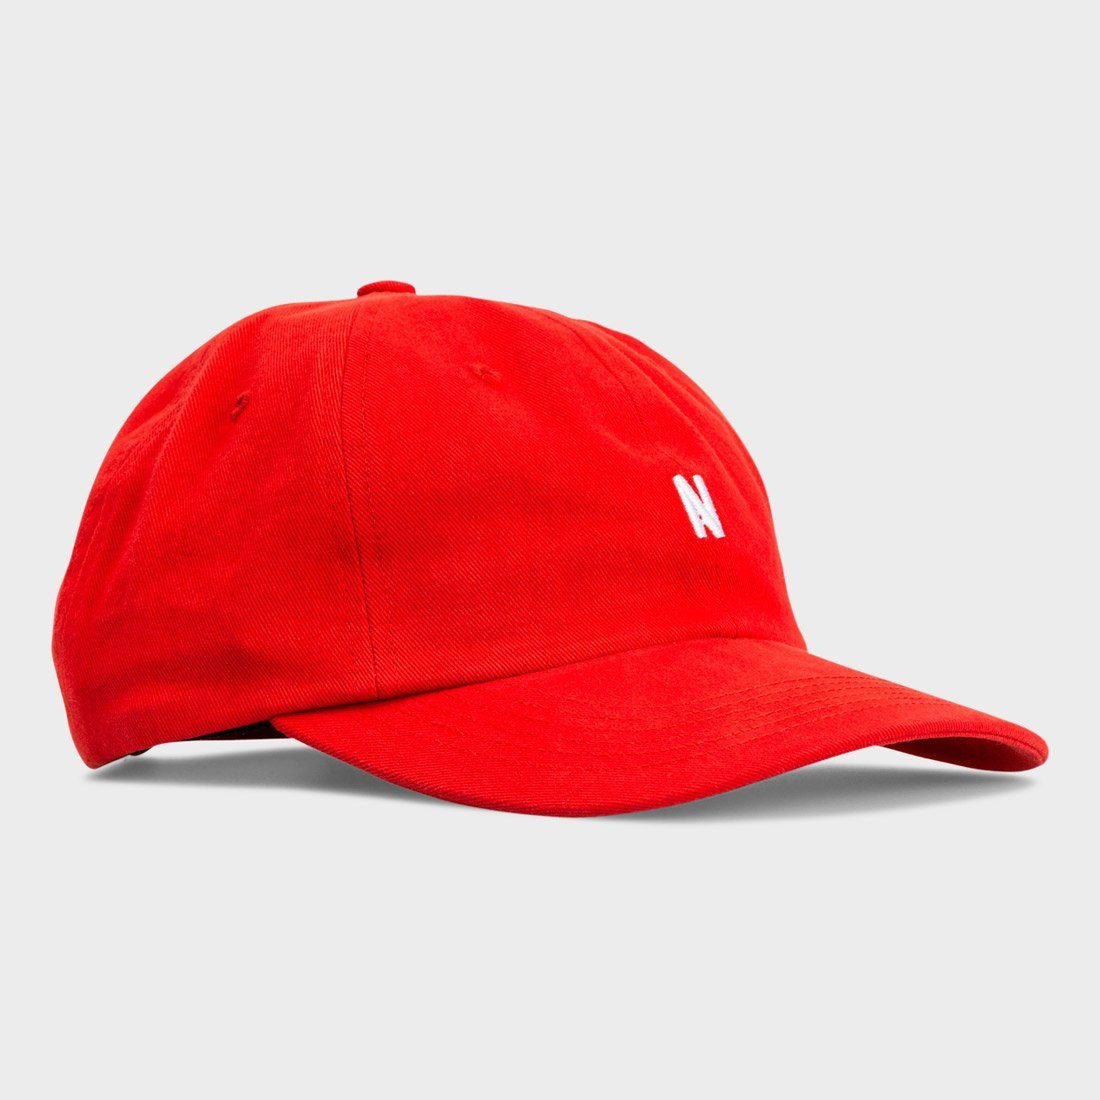 Norse Projects Twill Sports Cap Askja Red